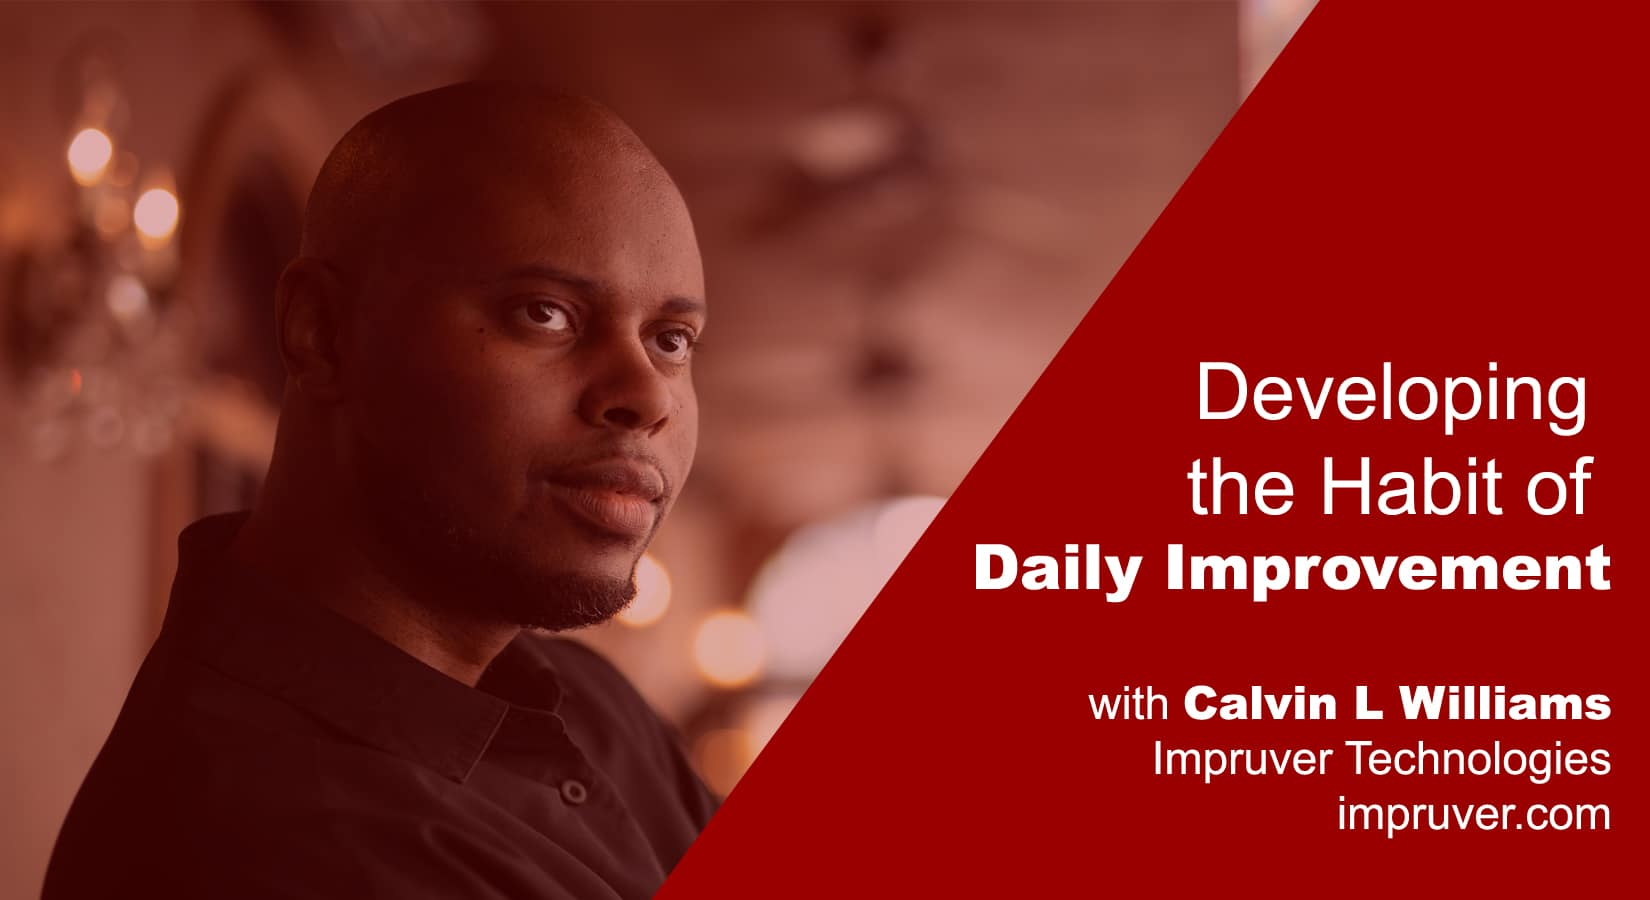 Impruver Daily Improvements Video